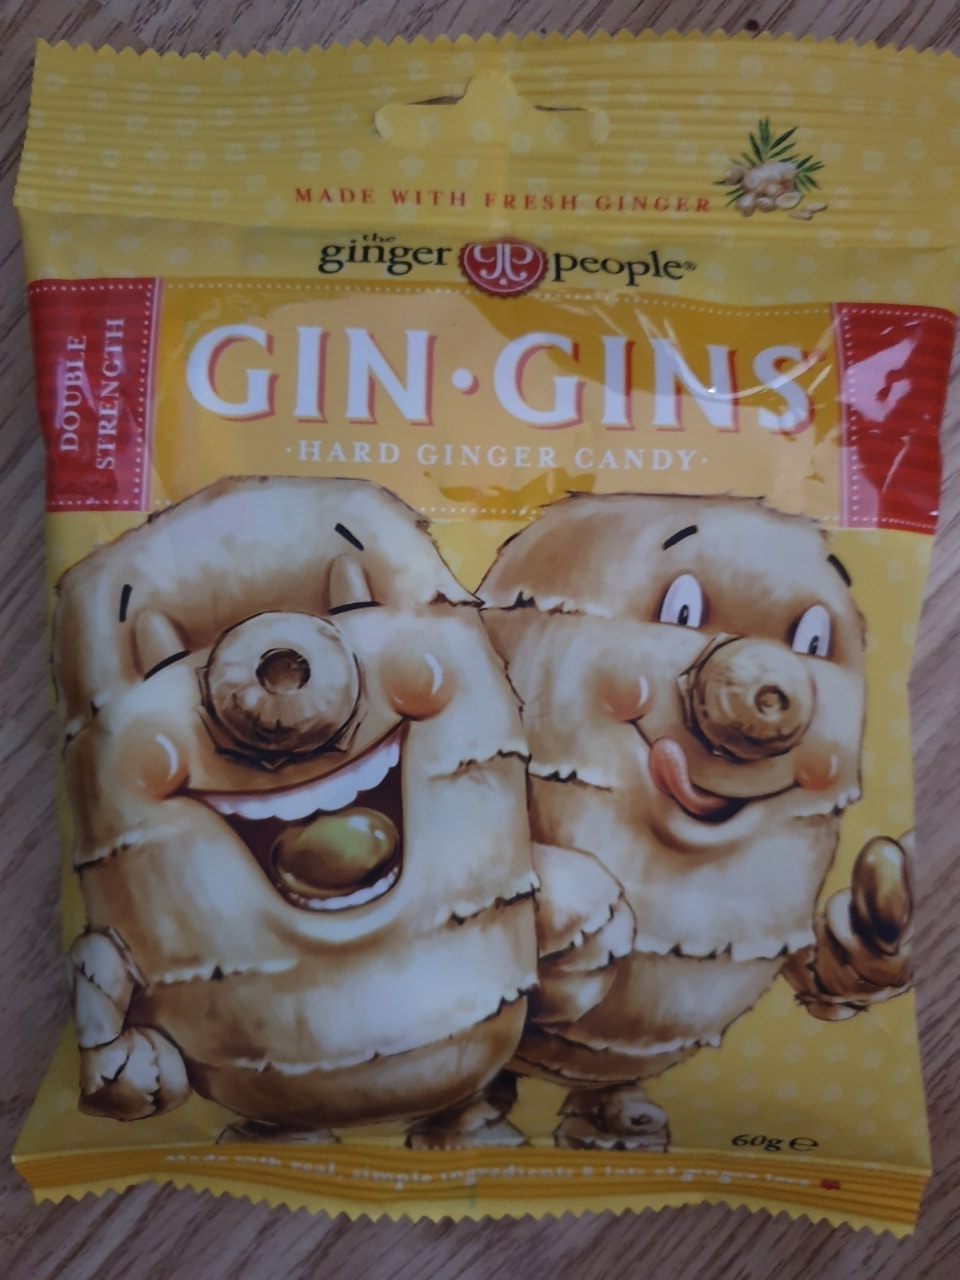 Gin gins ginger sweets